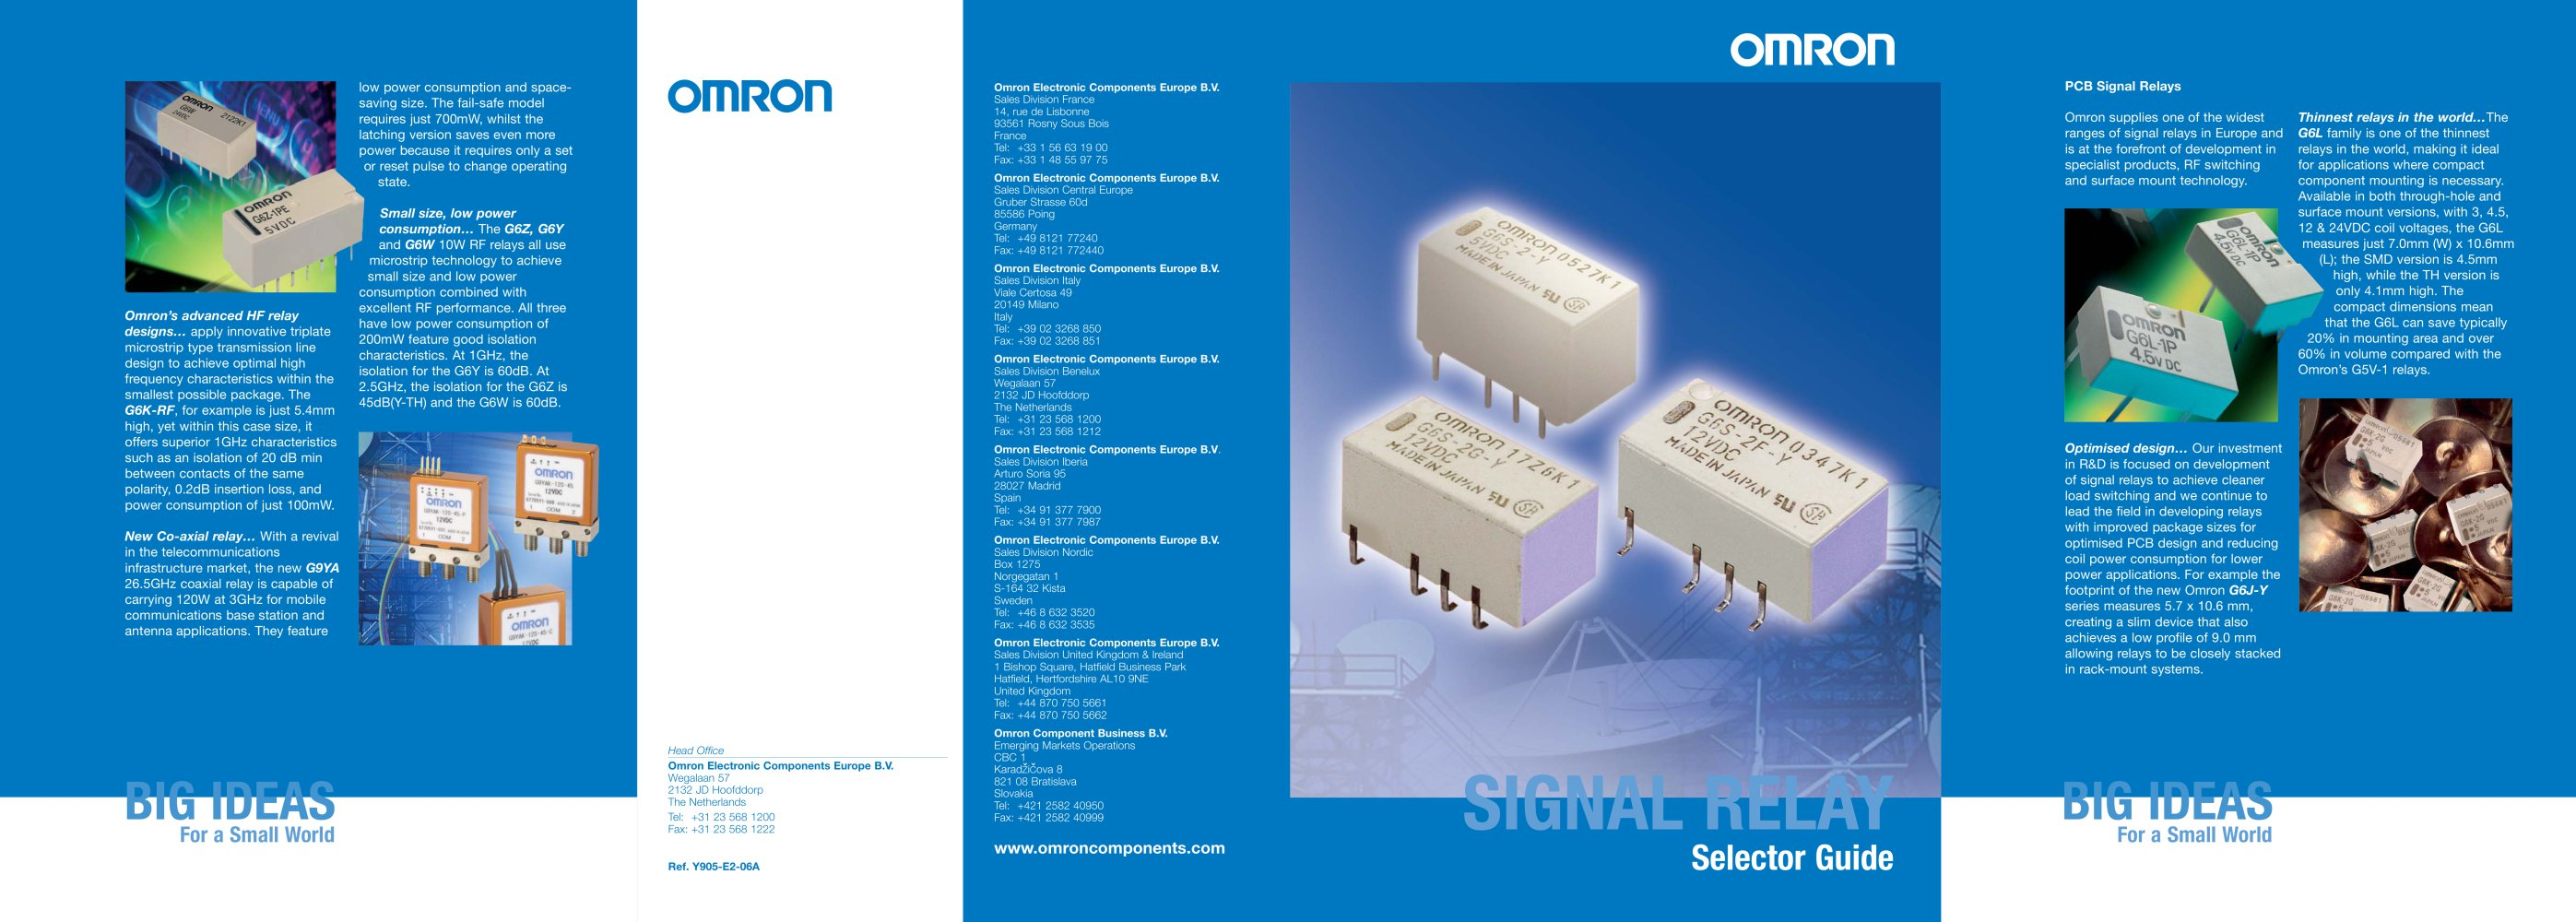 Signal Relay Product Brochure Omron Electrical Components Pdf Power Usage 1 2 Pages